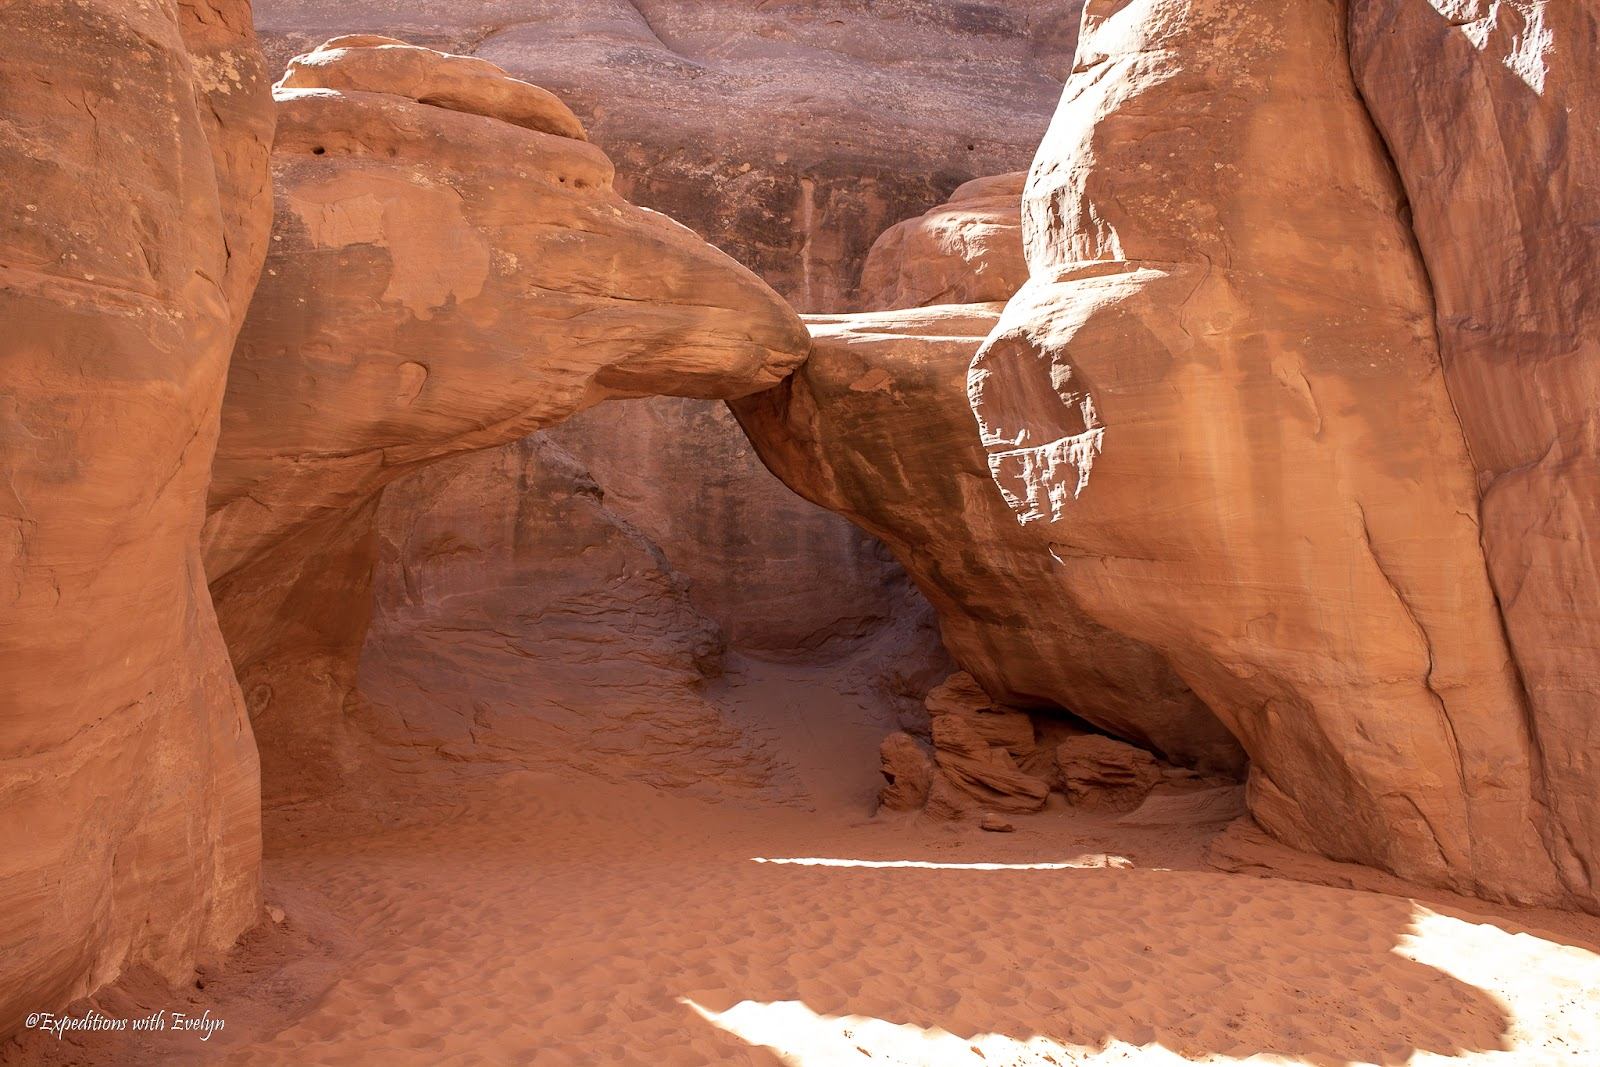 An arch of sandstone is set in canyon atop a flat surface of sand in the afternoon light.